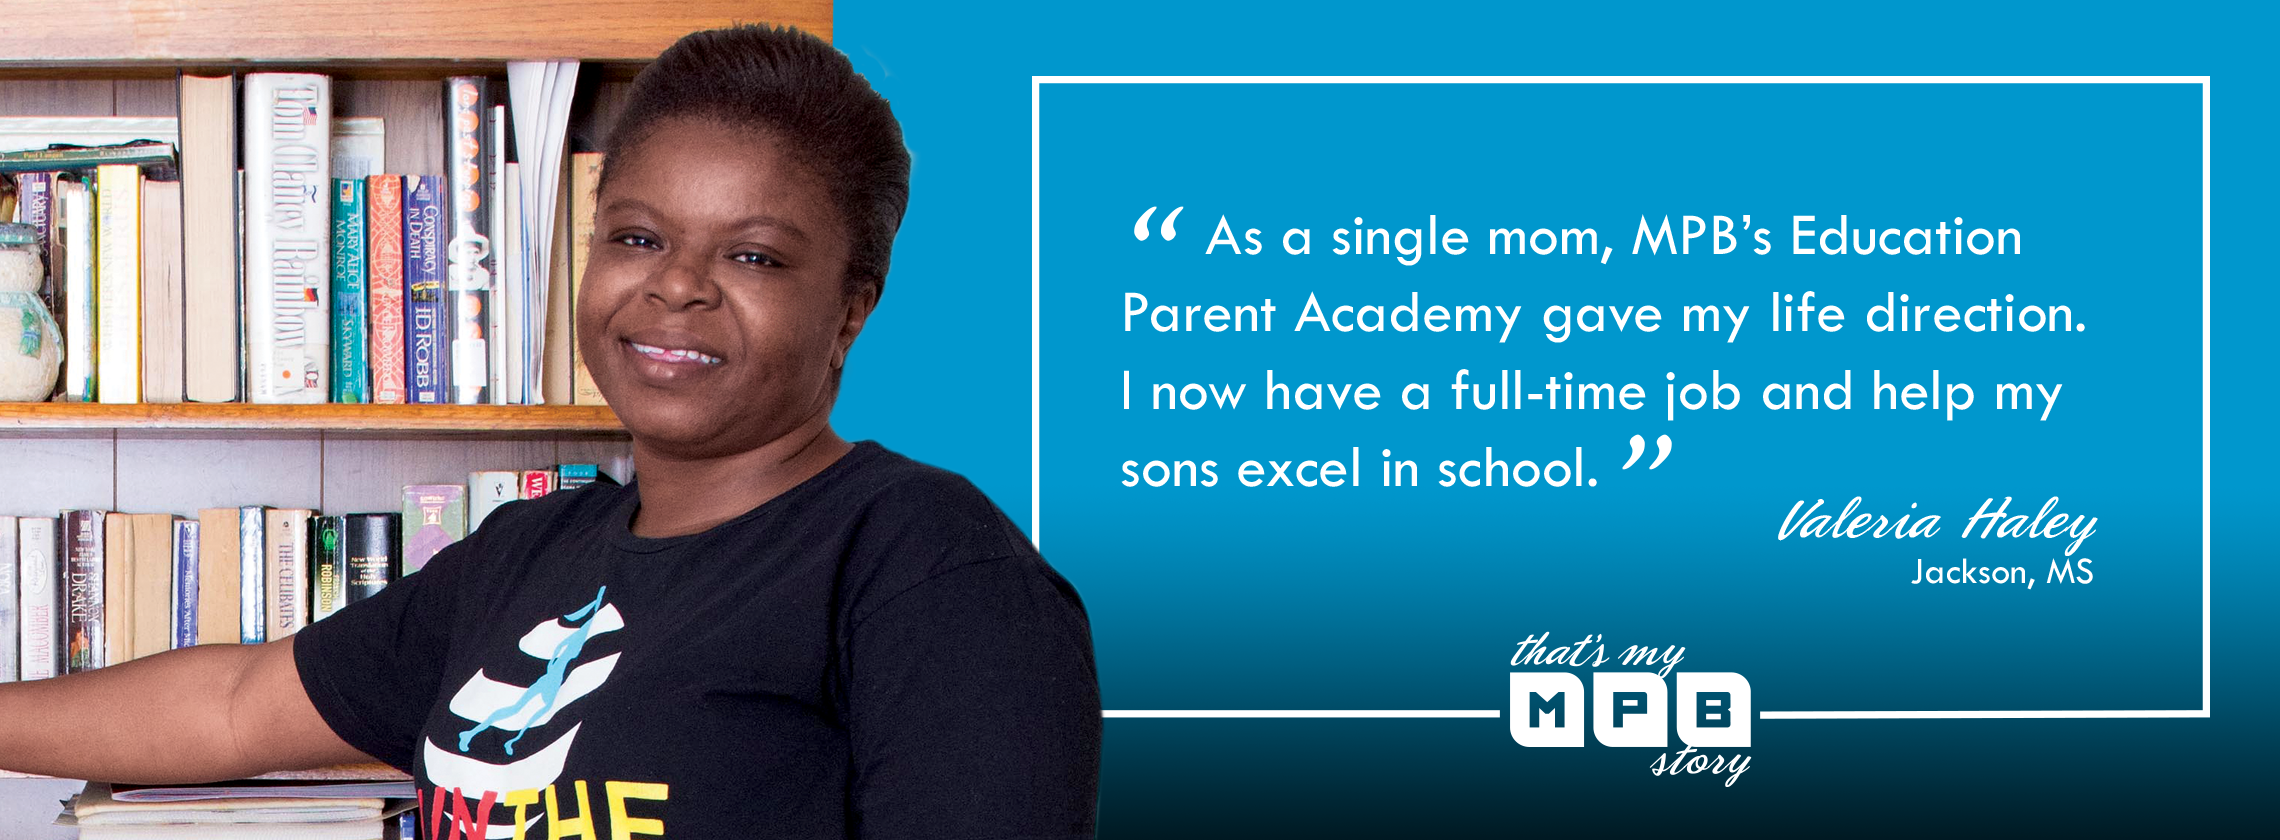 """As a single mom, MPB's Education Parent Academy gave my life direction. I now have a full-time job and help my sons excel in school.""–  Valeria Haley, Jackson, MS"